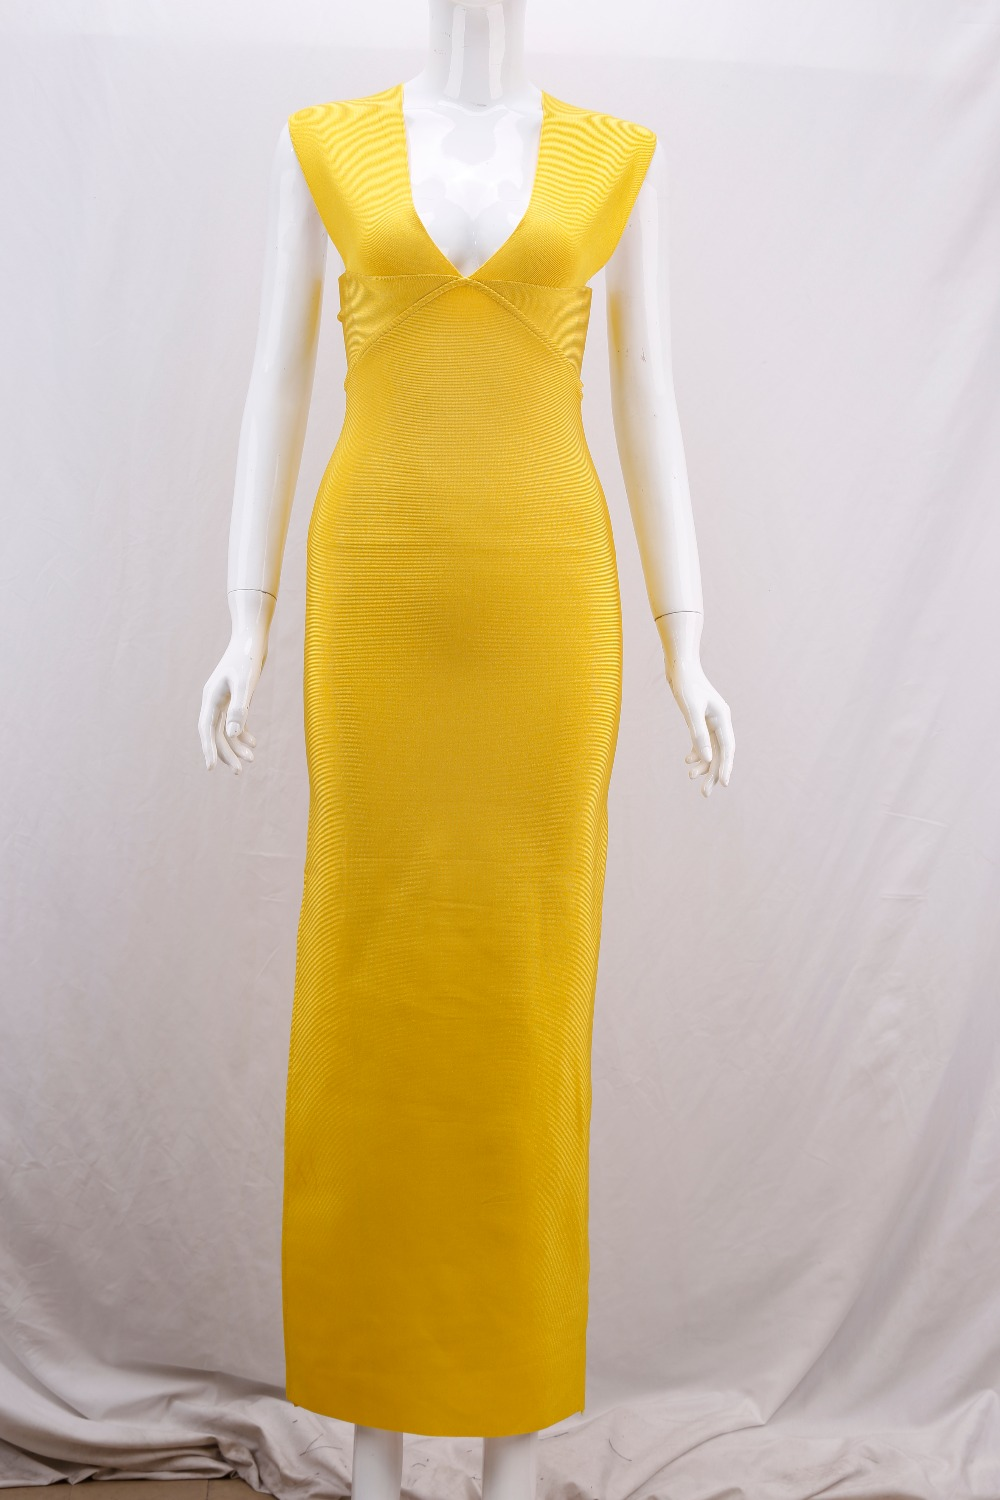 New ladies sexy bandage deep V top quality yellow sleeveless ankle dress cocktail party dress wholesale and retail B20